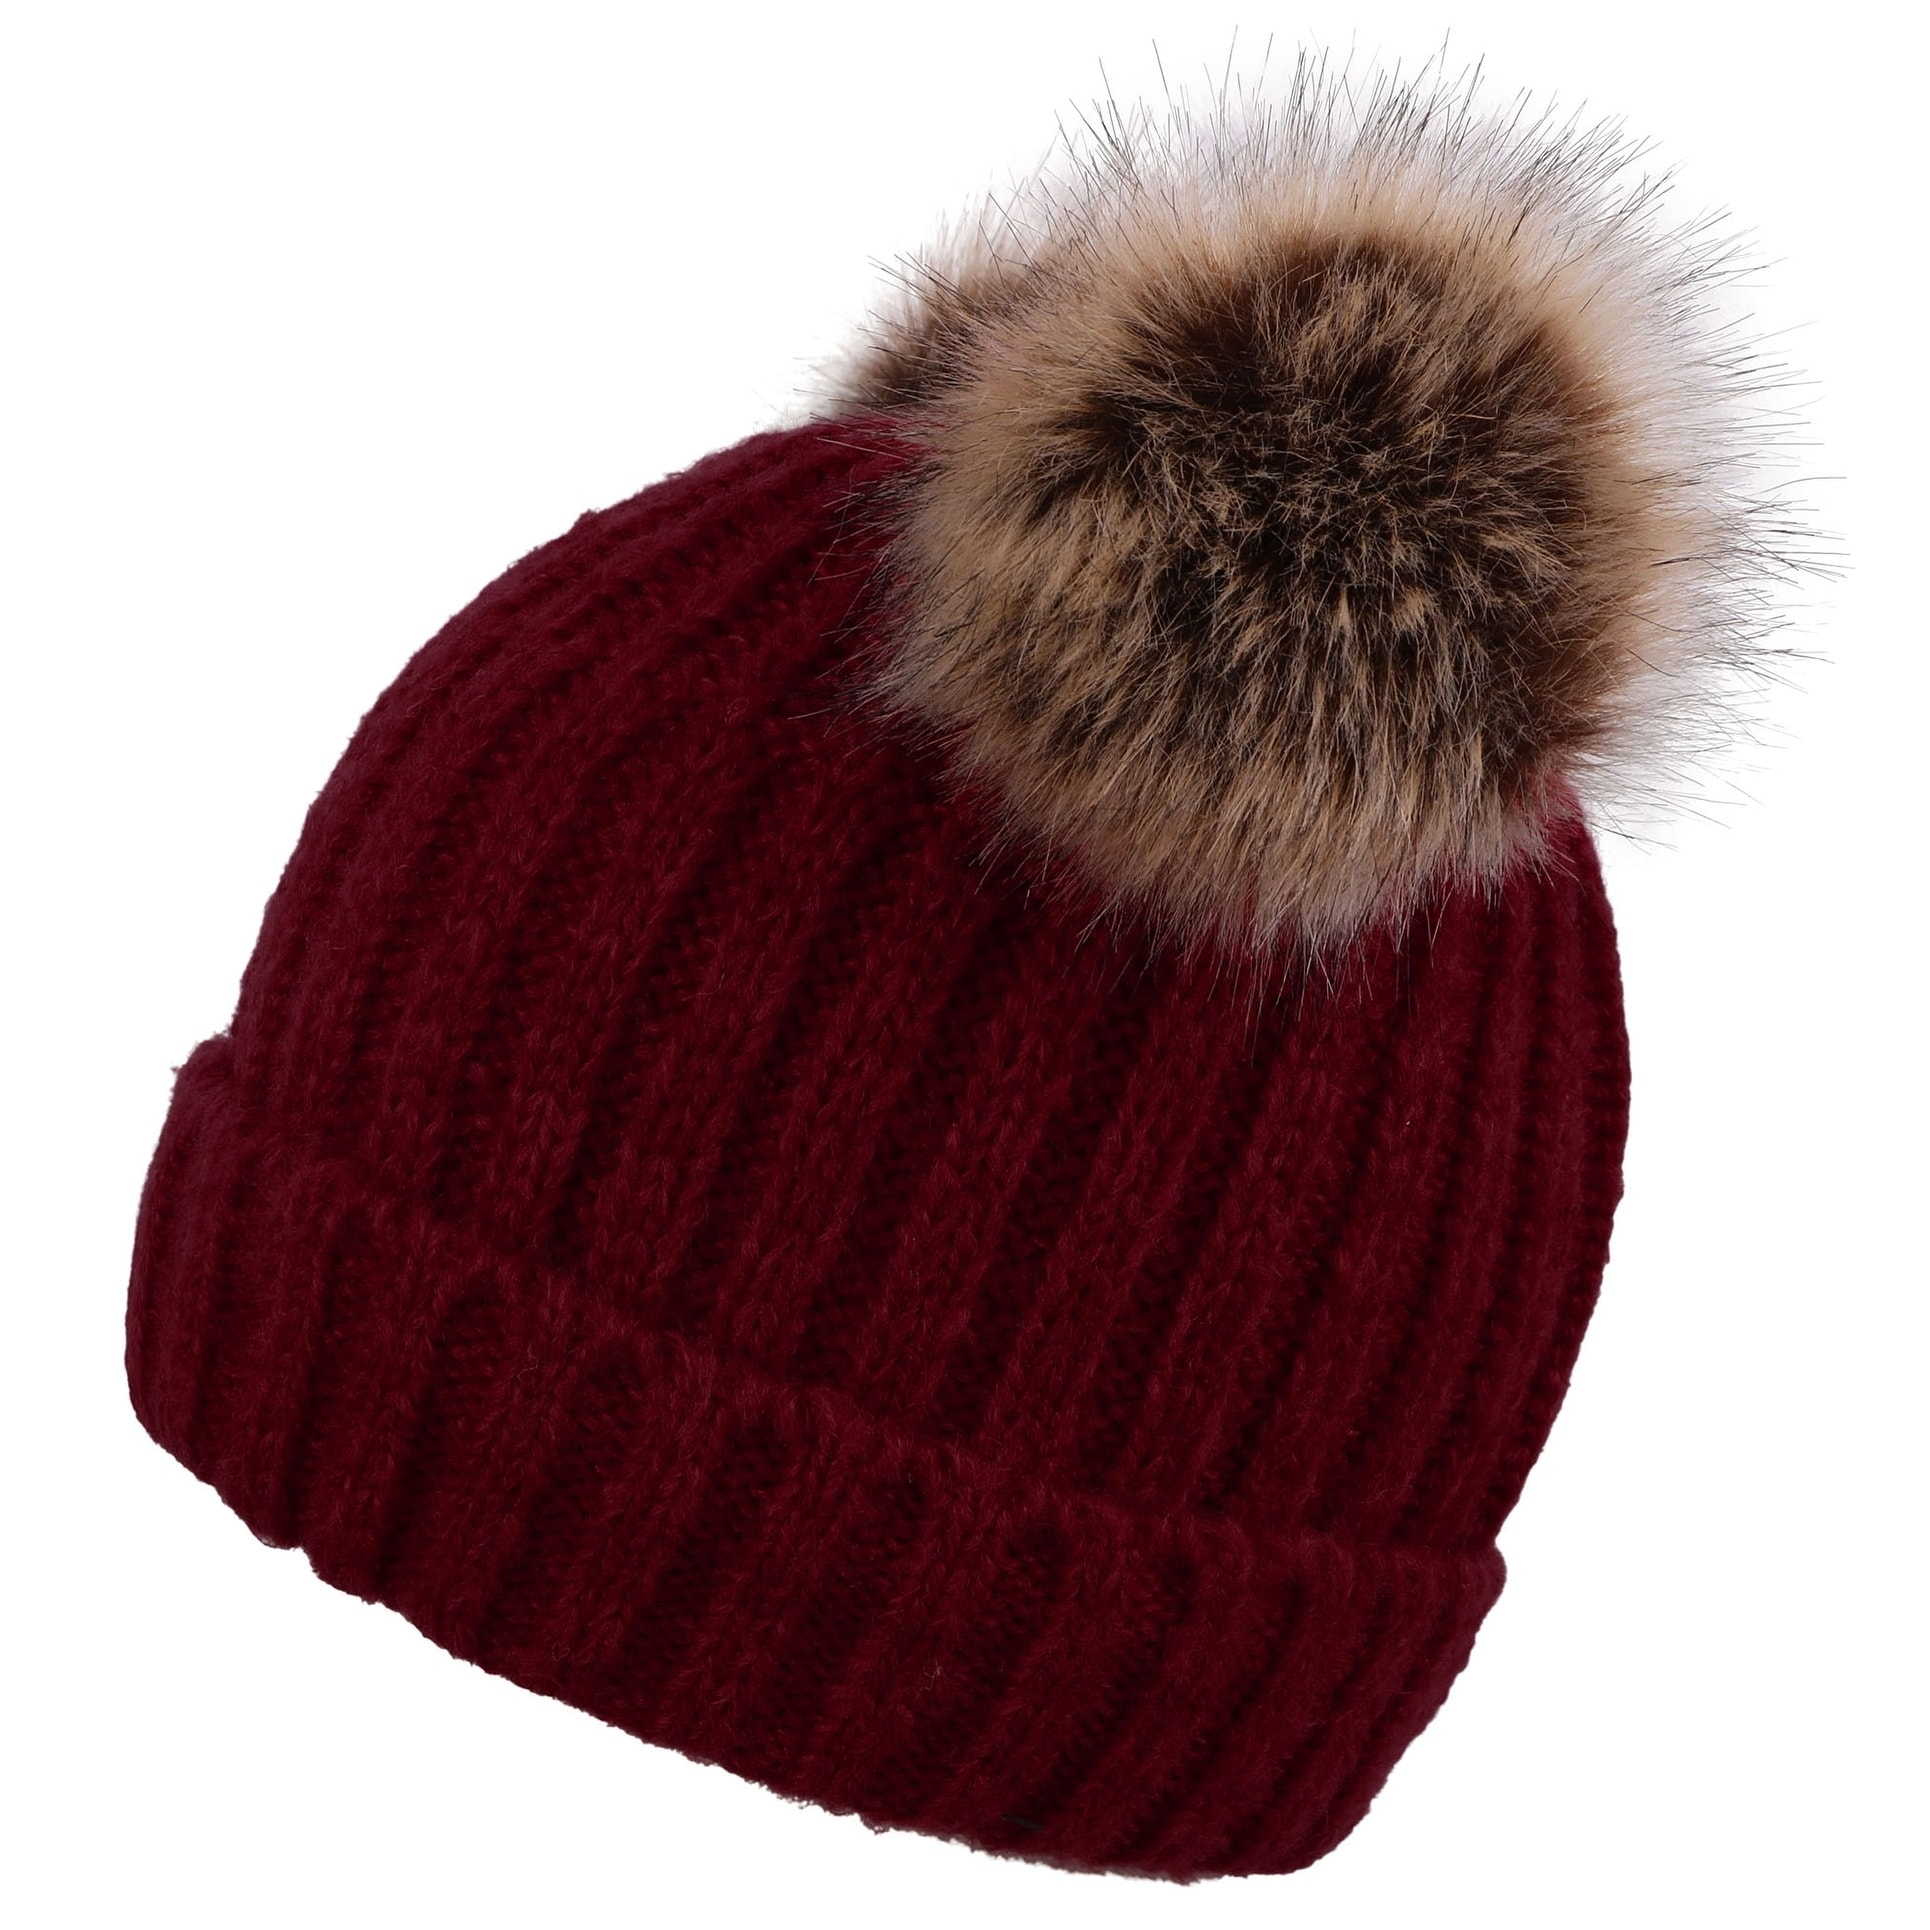 57517f7cc35ed2 Shop Men & Women's Cable Knit Beanie with Faux Fur Pompom Ears - On Sale - Free  Shipping On Orders Over $45 - Overstock - 24072260